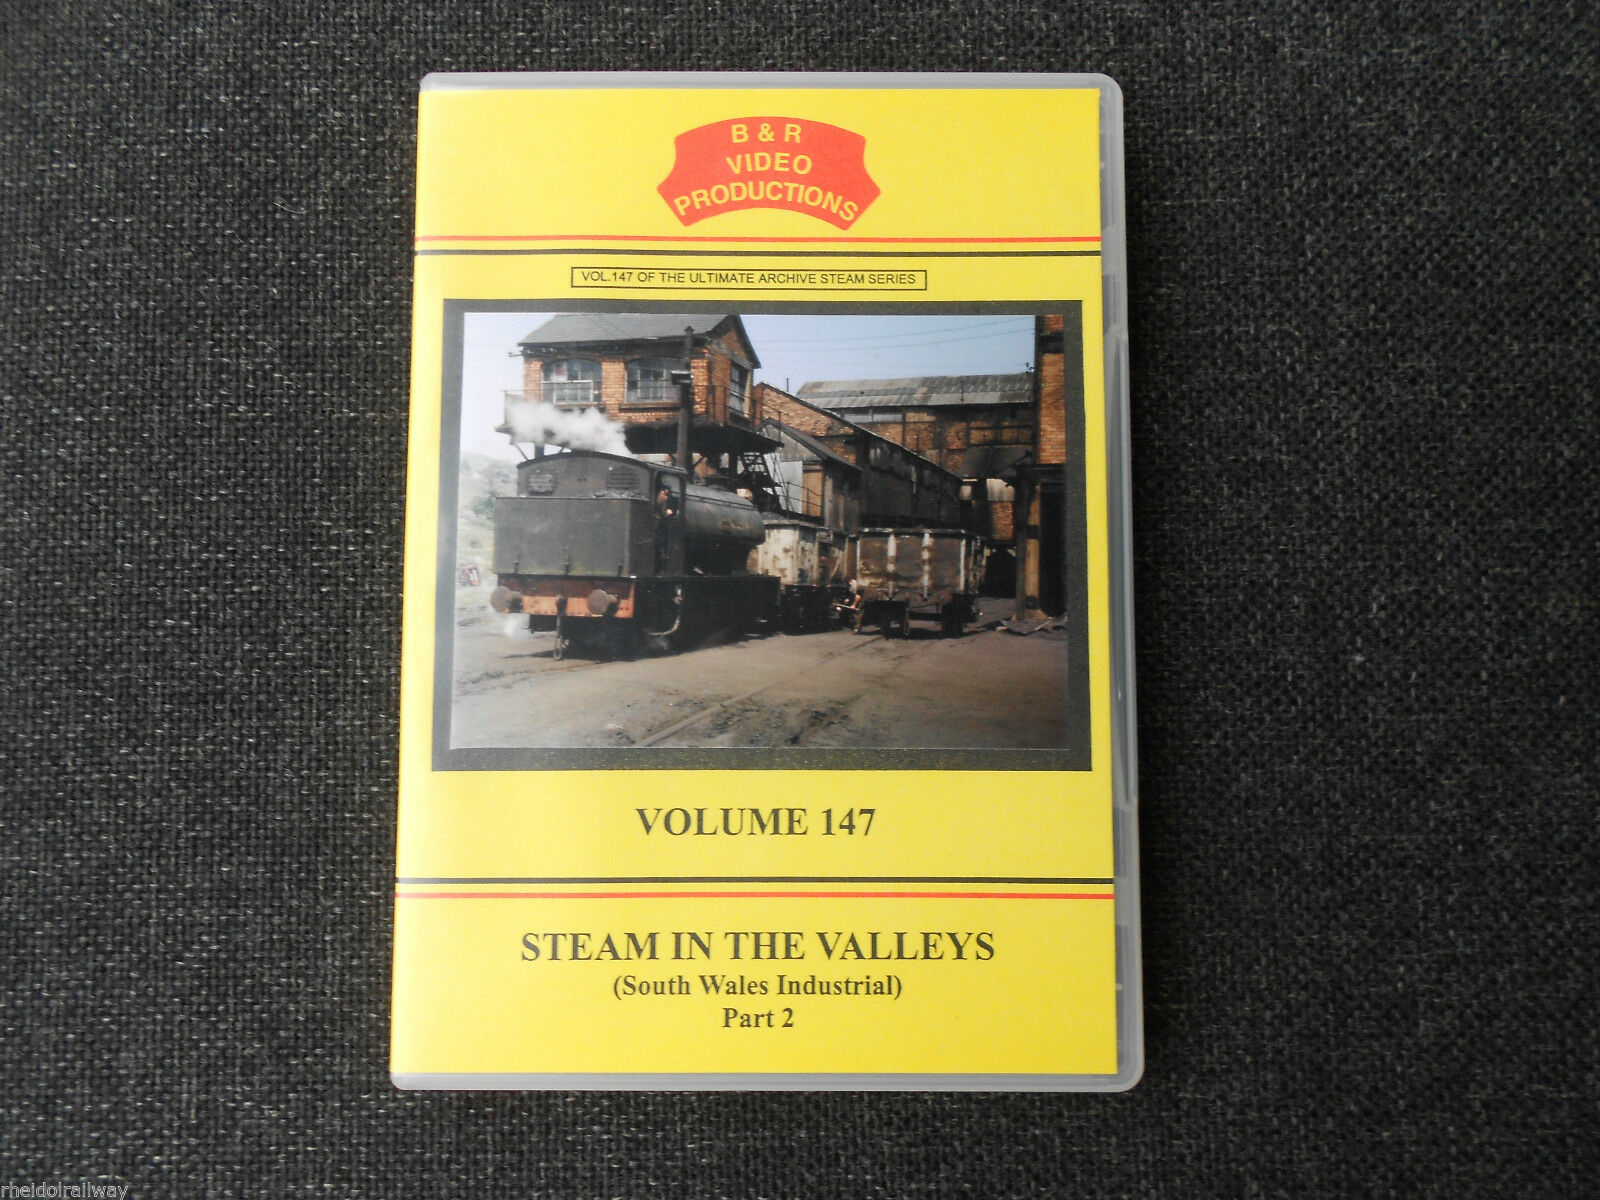 Maerdy, Tredegar, Blaenavon, Steam In The Valleys Part 2 B&R Vol 147 DVD